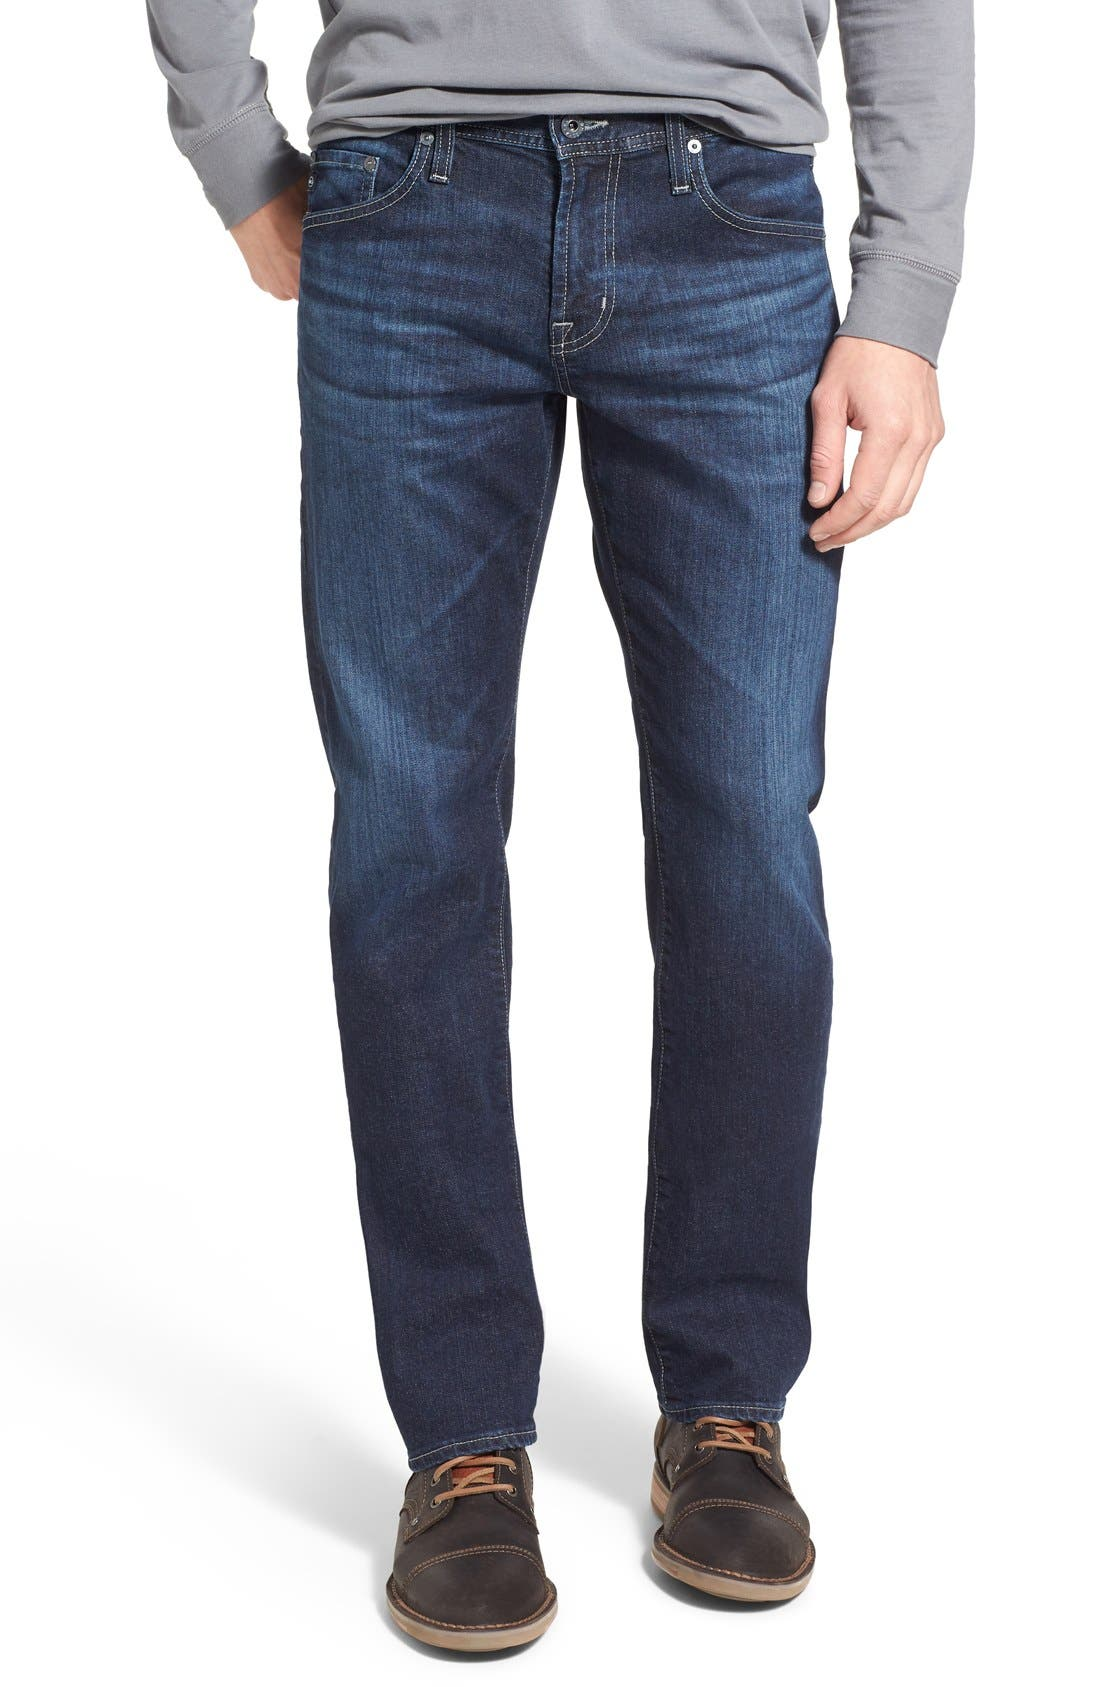 'Protégé' Straight Leg Jeans,                             Main thumbnail 1, color,                             Kingswell